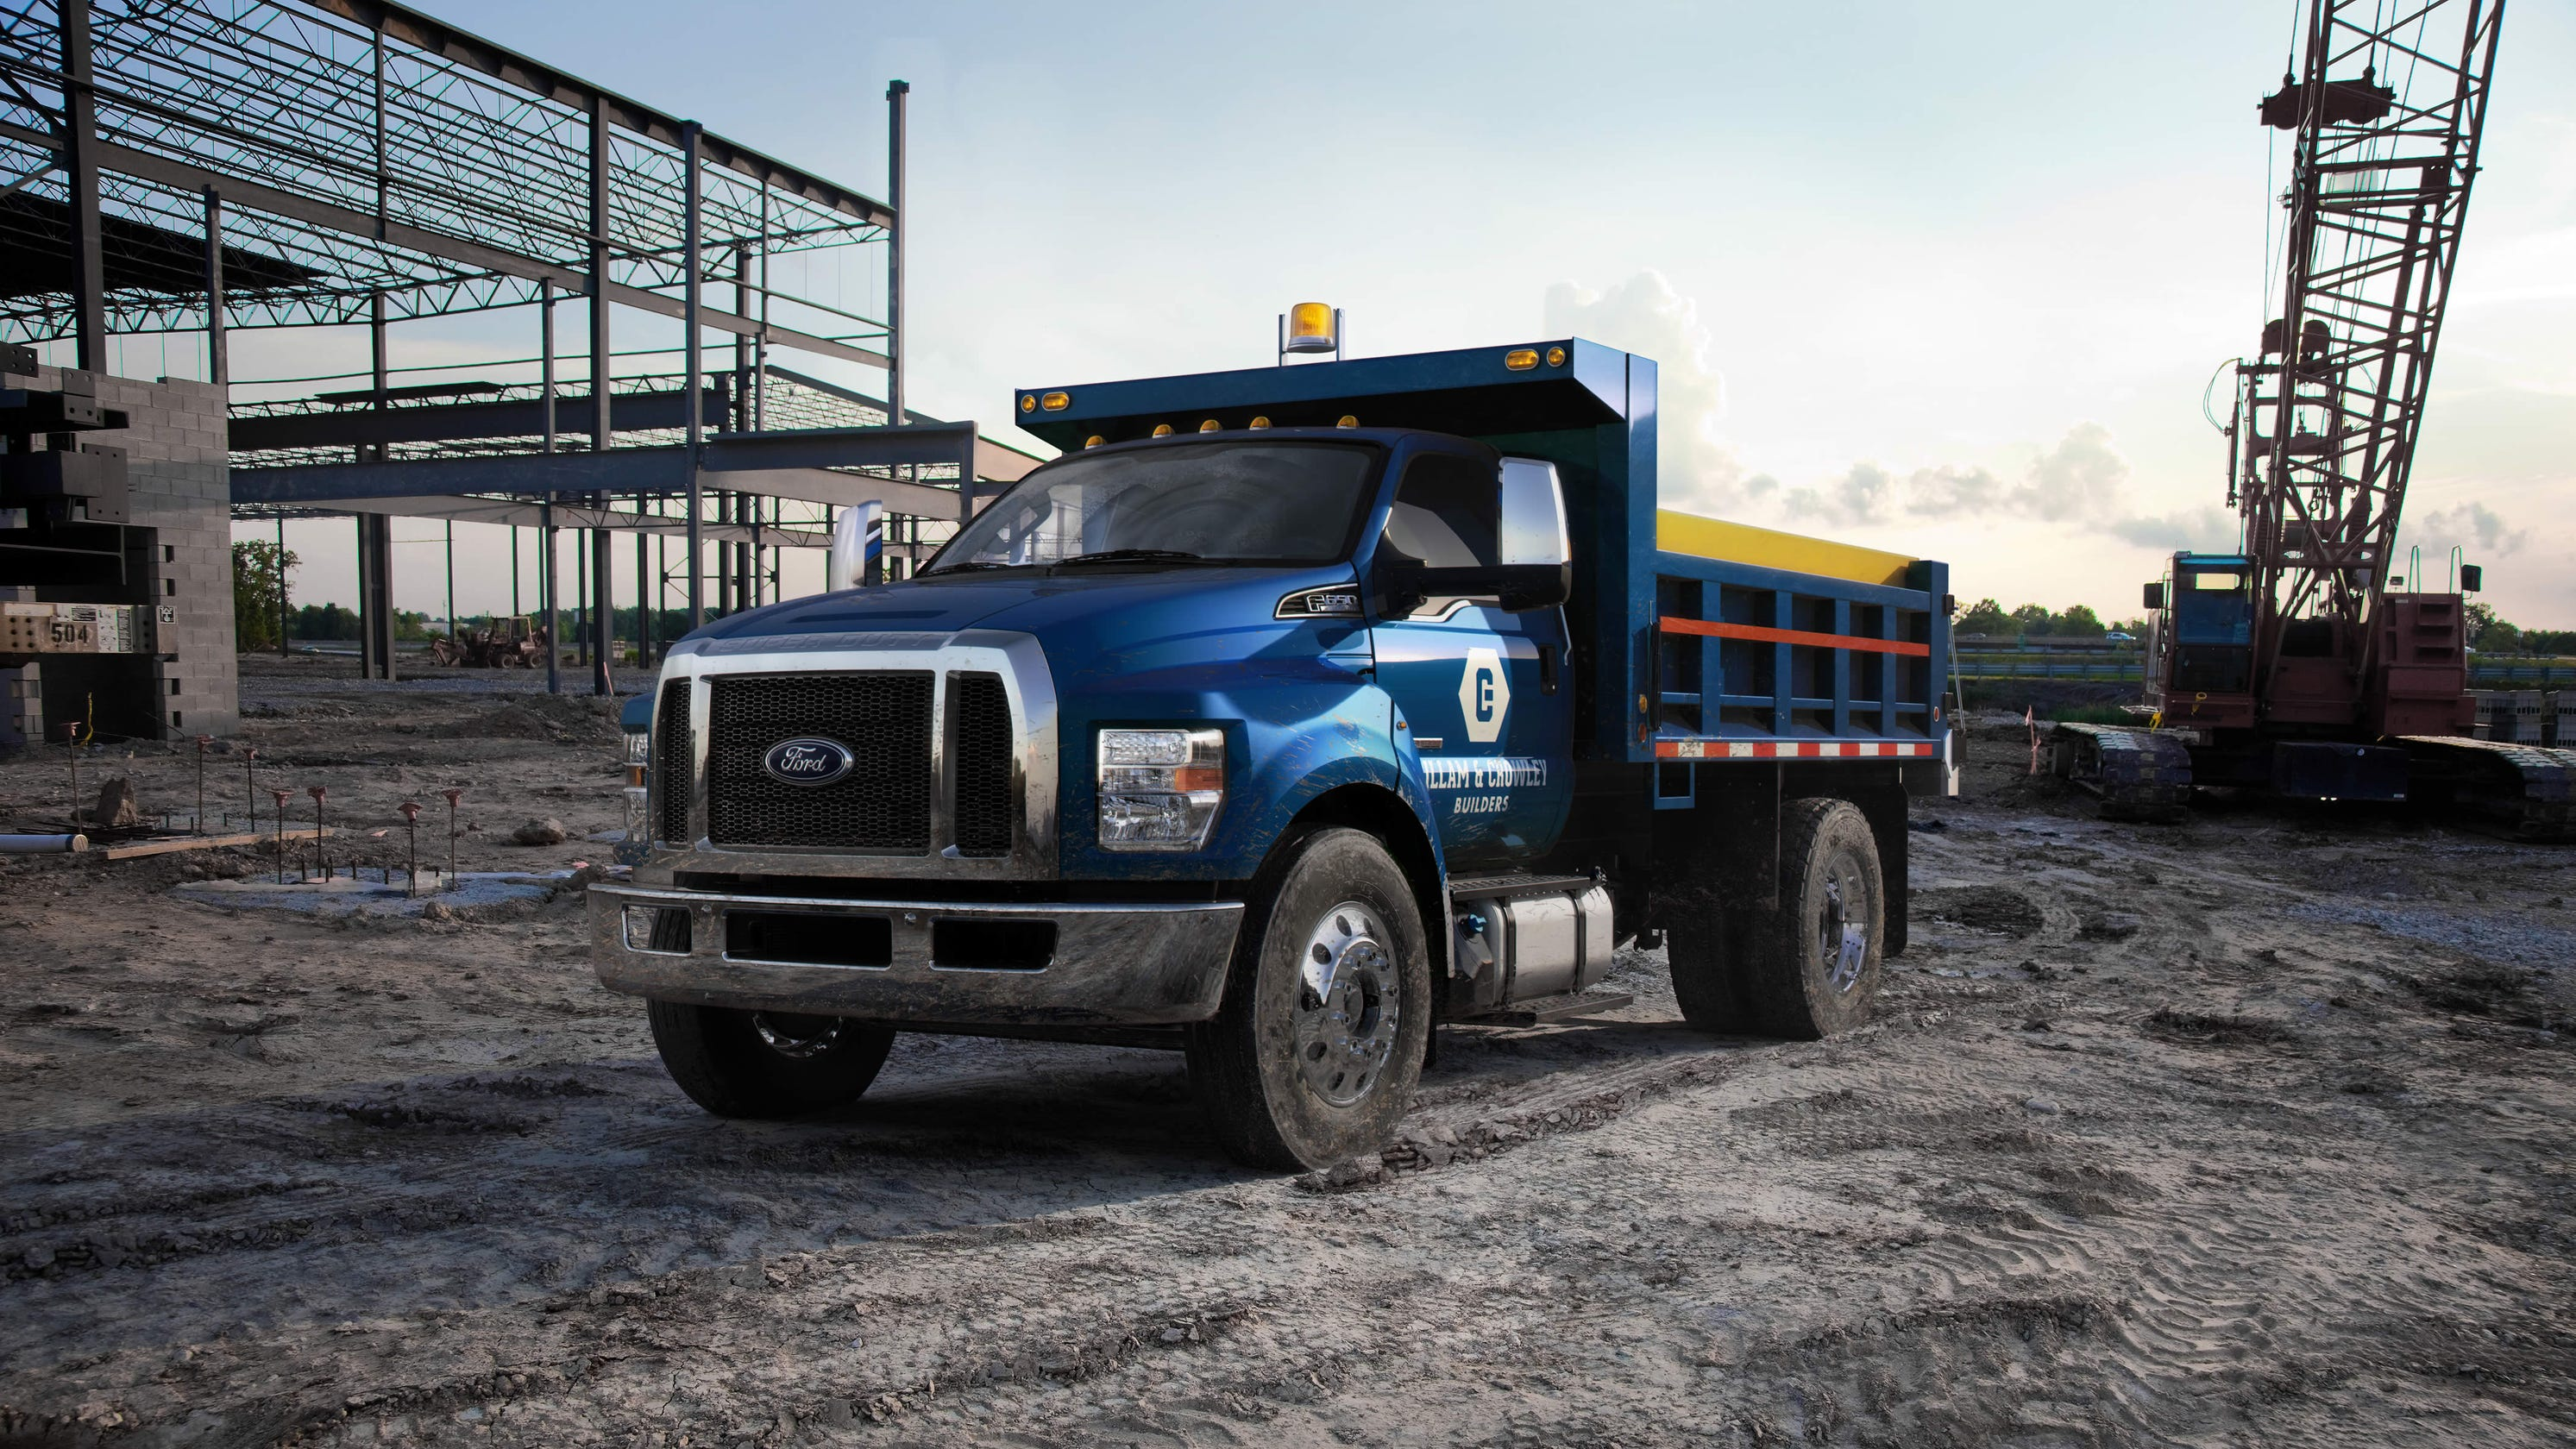 Battle brewing over medium duty Chevy, Ford, Ram trucks